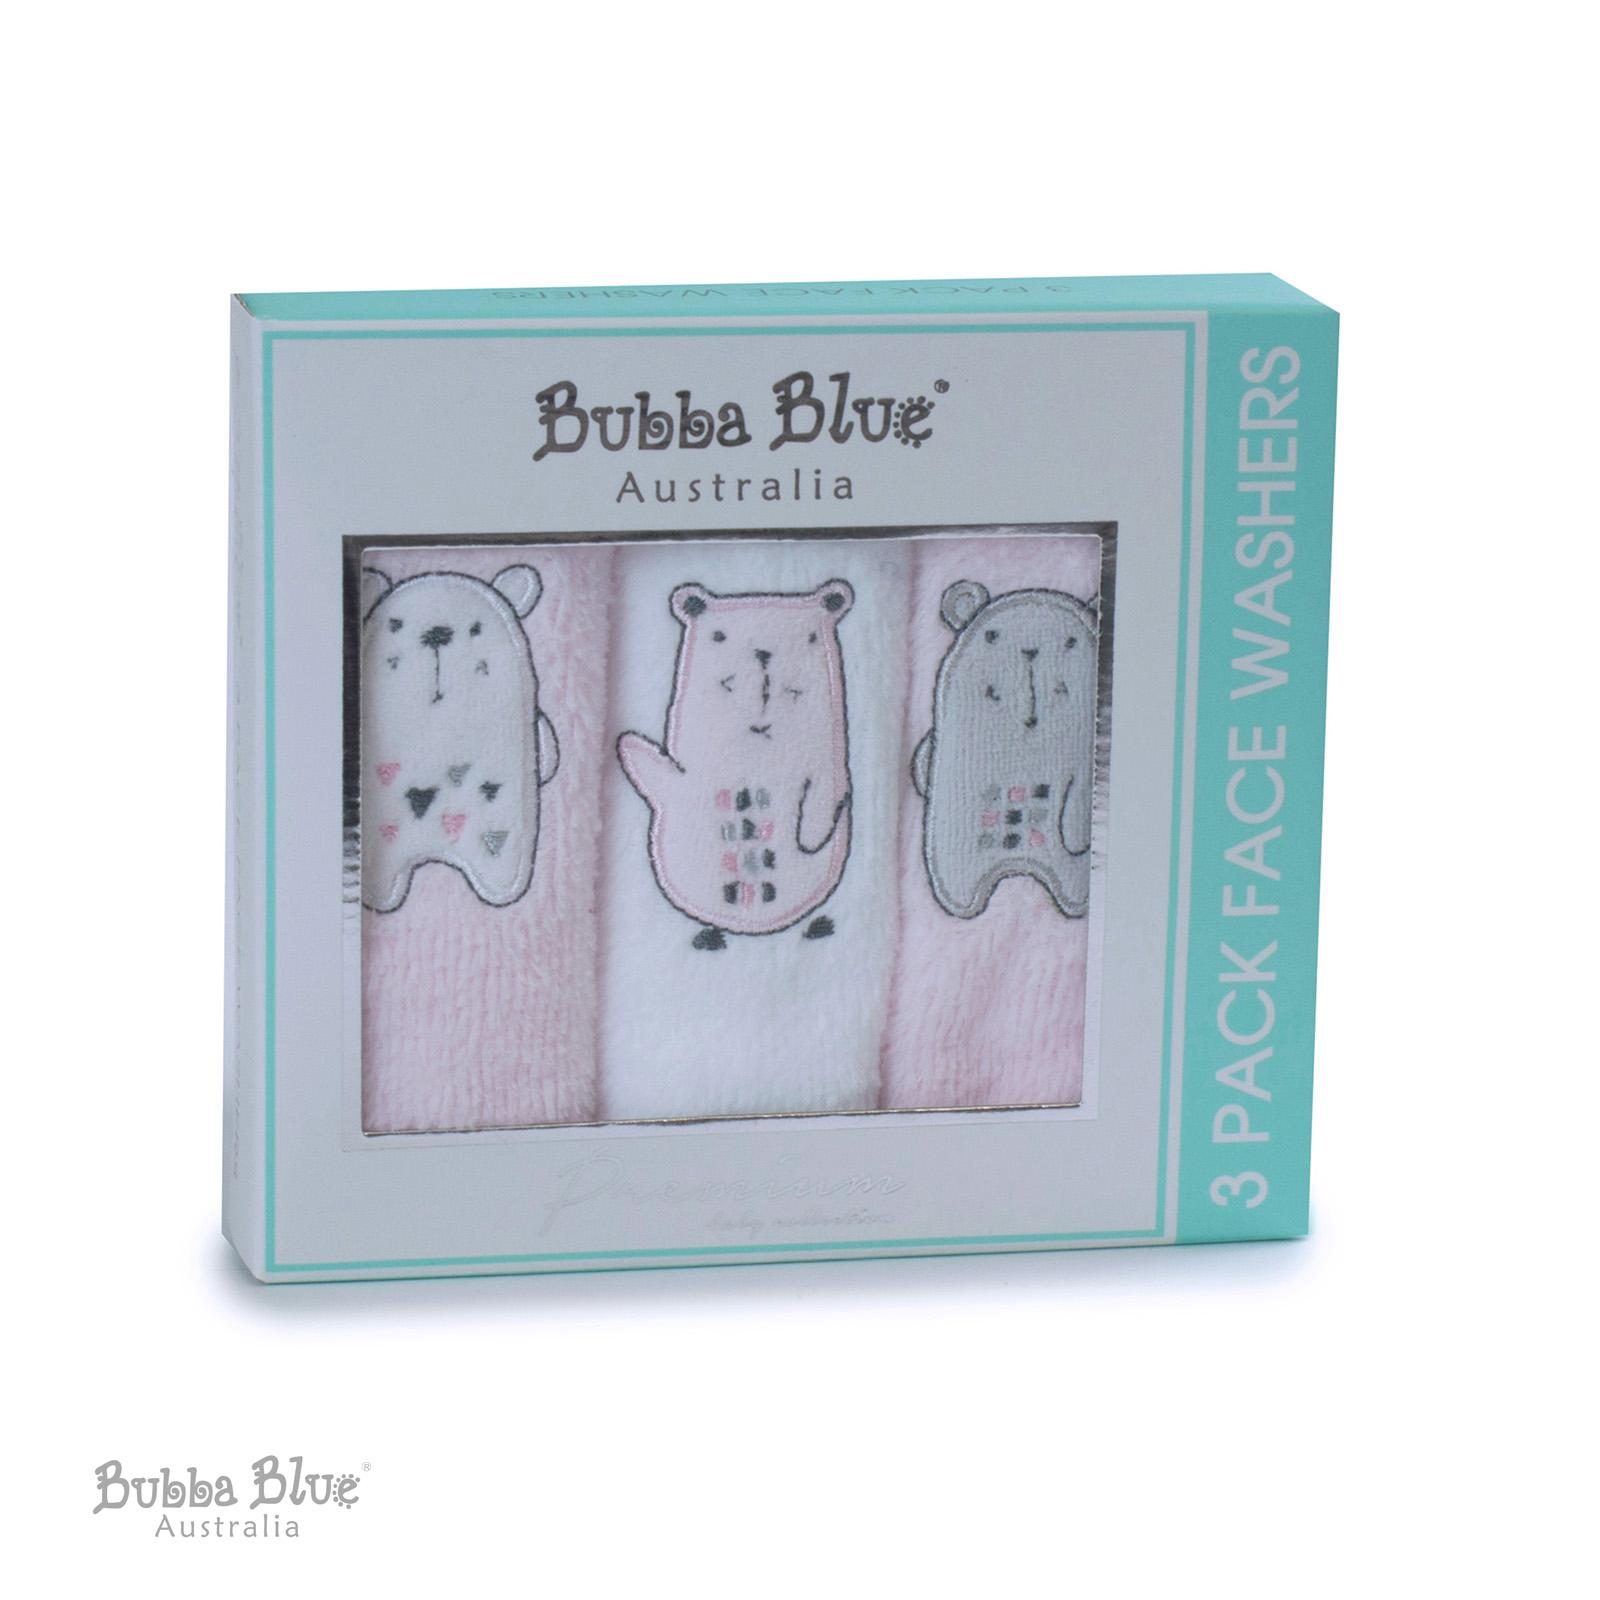 Bubba Blue Beary Sweet 3pc Facewasher